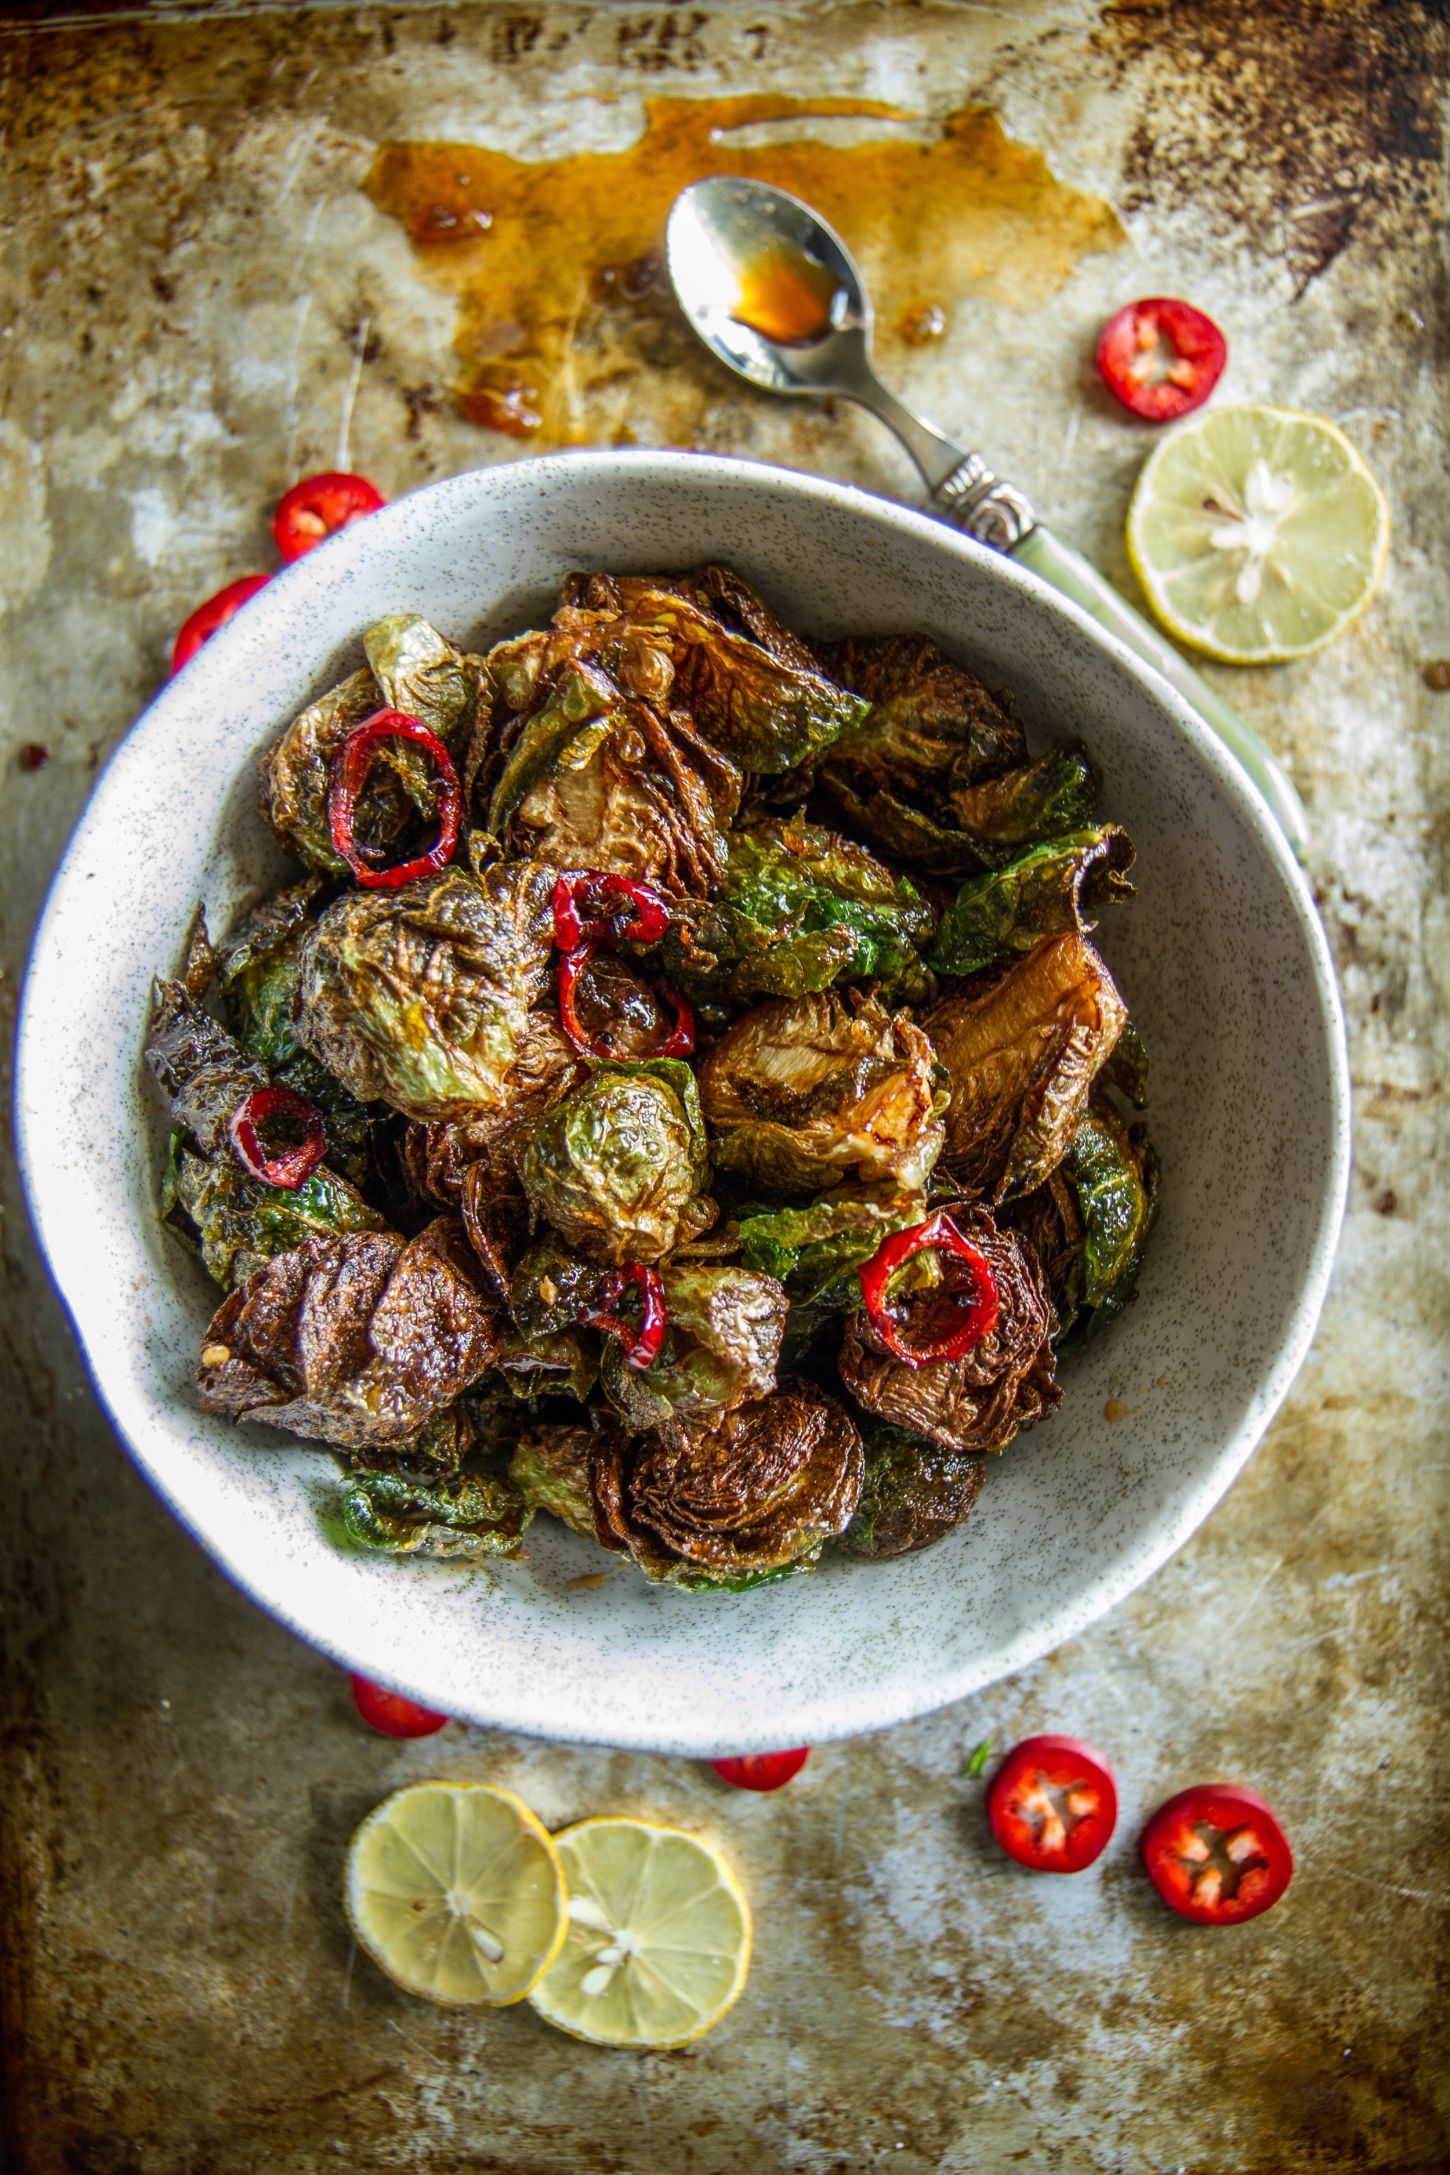 Crispy Fried Brussels Sprouts With Honey Sriracha Glaze